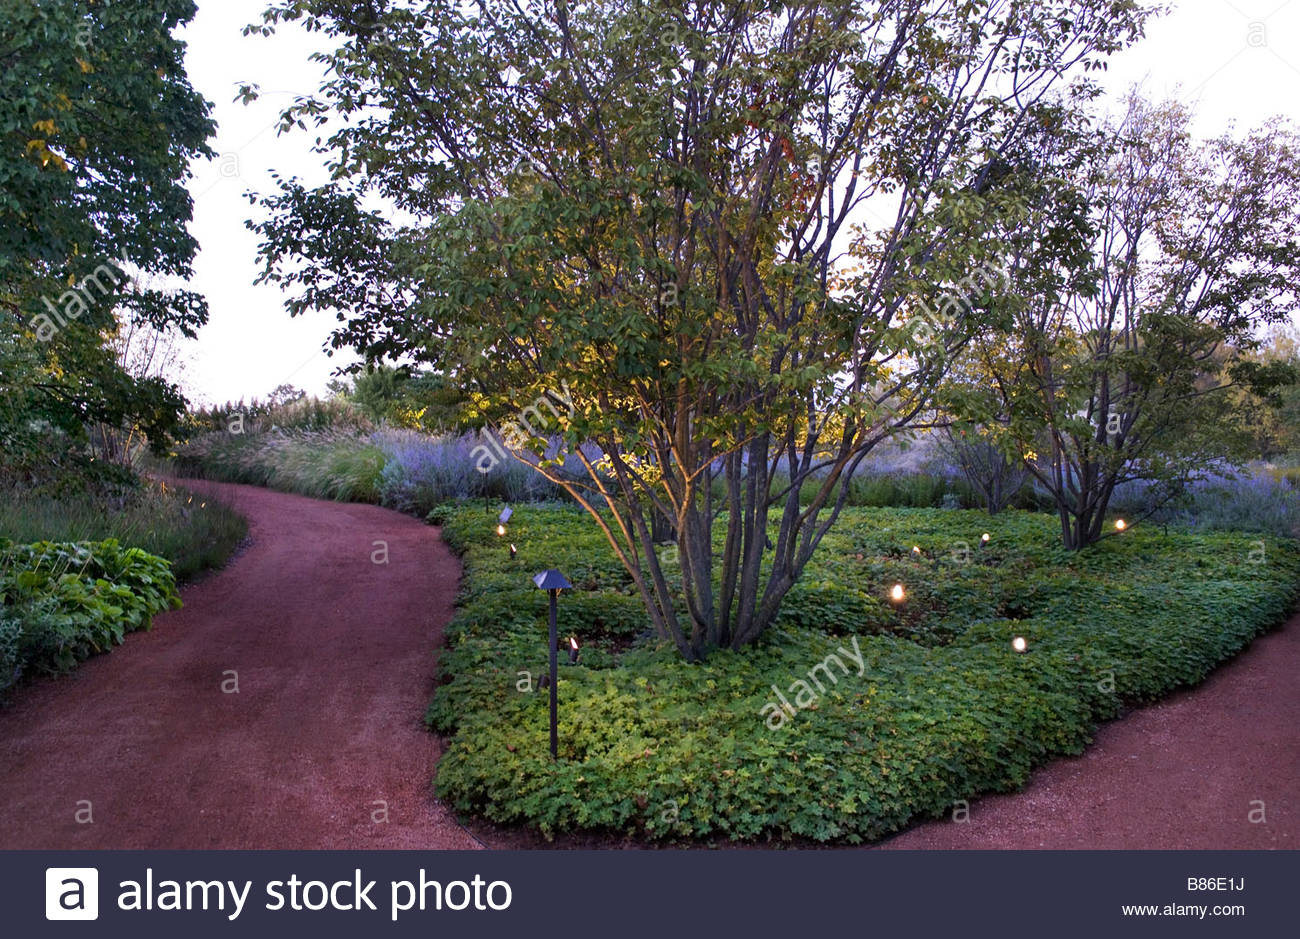 lighting under amelanchier x grandiflora autumn brilliance and planting evening island chicago botanic garden stock